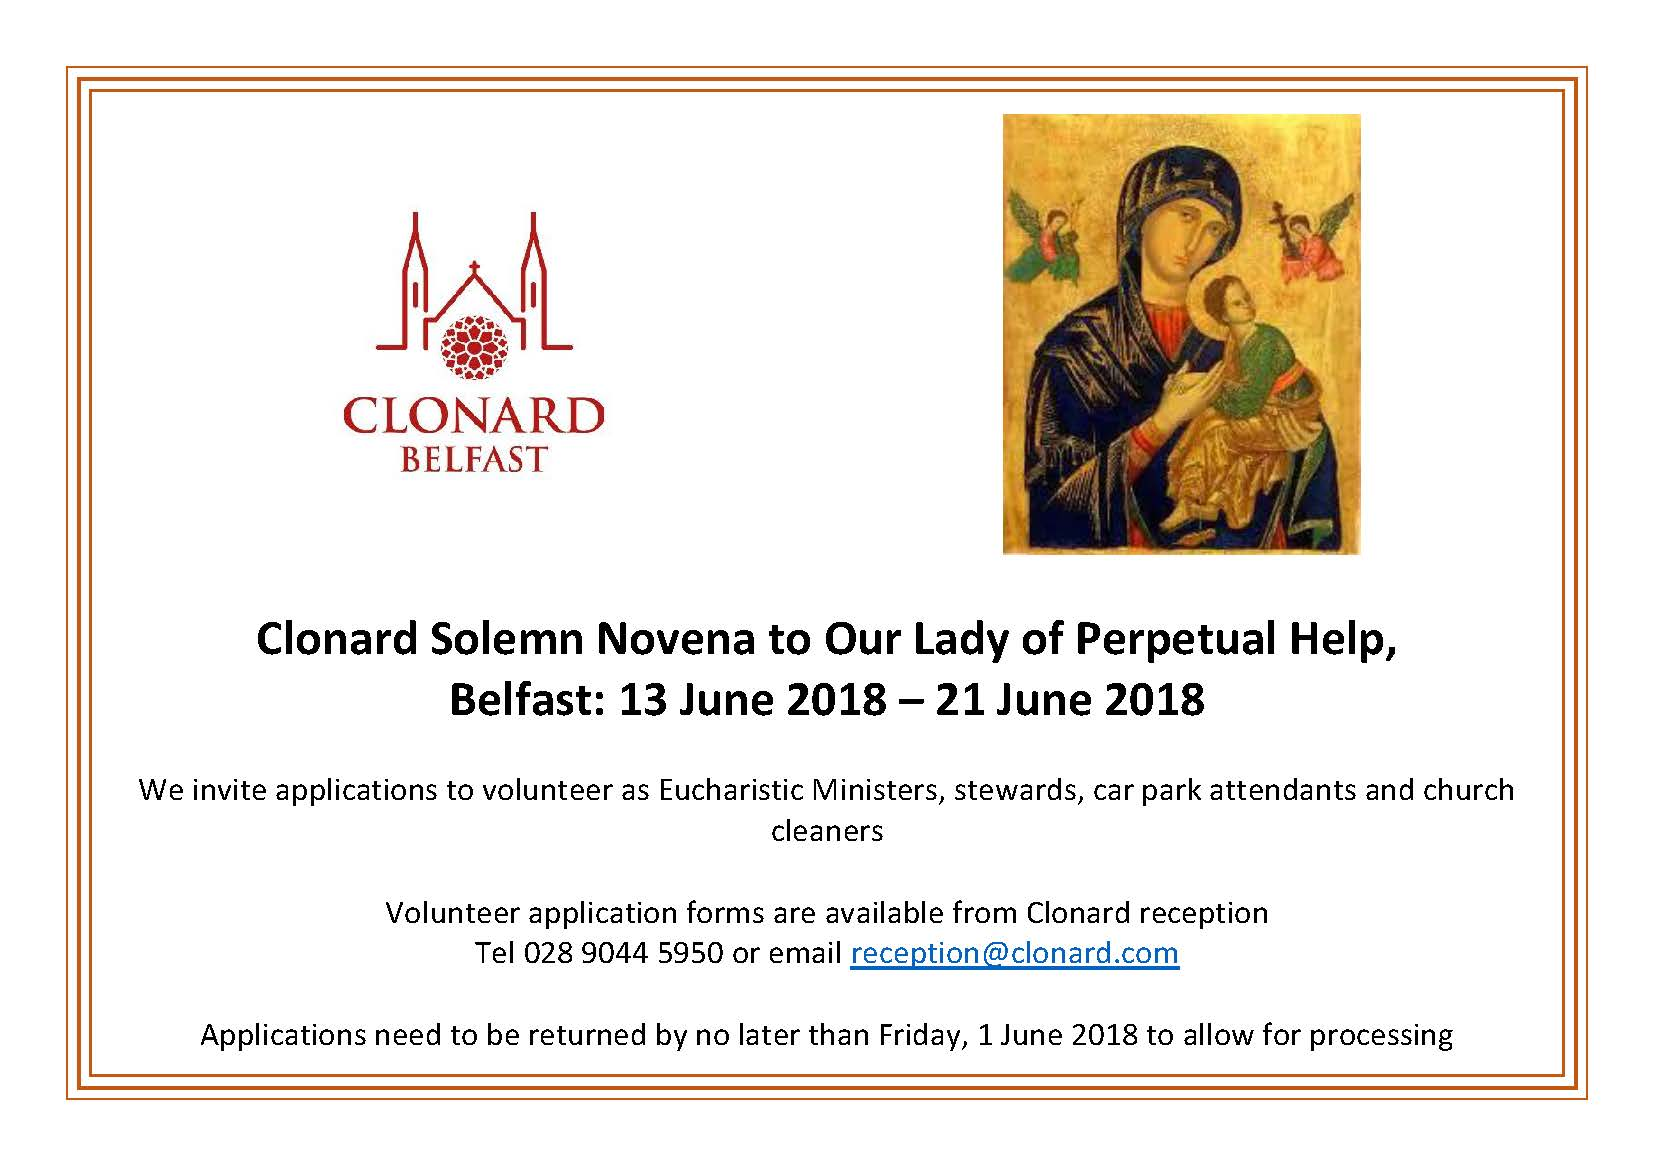 Clonard-Solemn-Novena-to-Our-Lady-of-Perpetual-Help